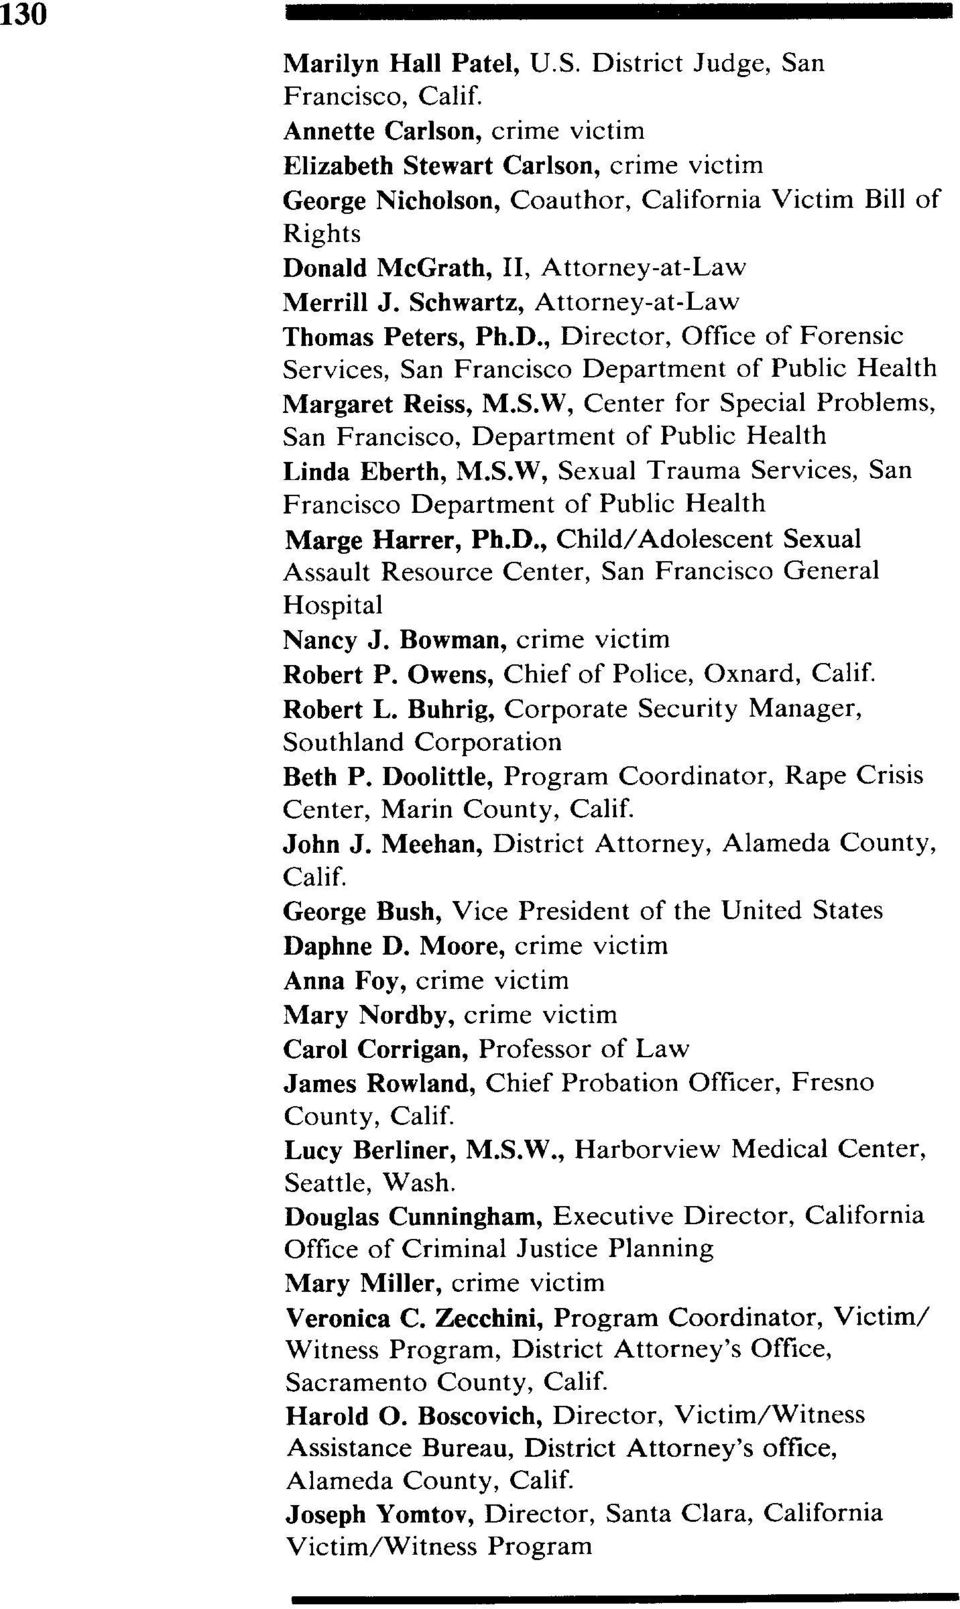 Schwartz, Attorney-at-Law Thomas Peters, Ph.D., Director, Office of Forensic Services, San Francisco Department of Public Health Margaret Reiss, M.S.W, Center for Special Problems, San Francisco, Department of Public Health Linda Eberth, M.